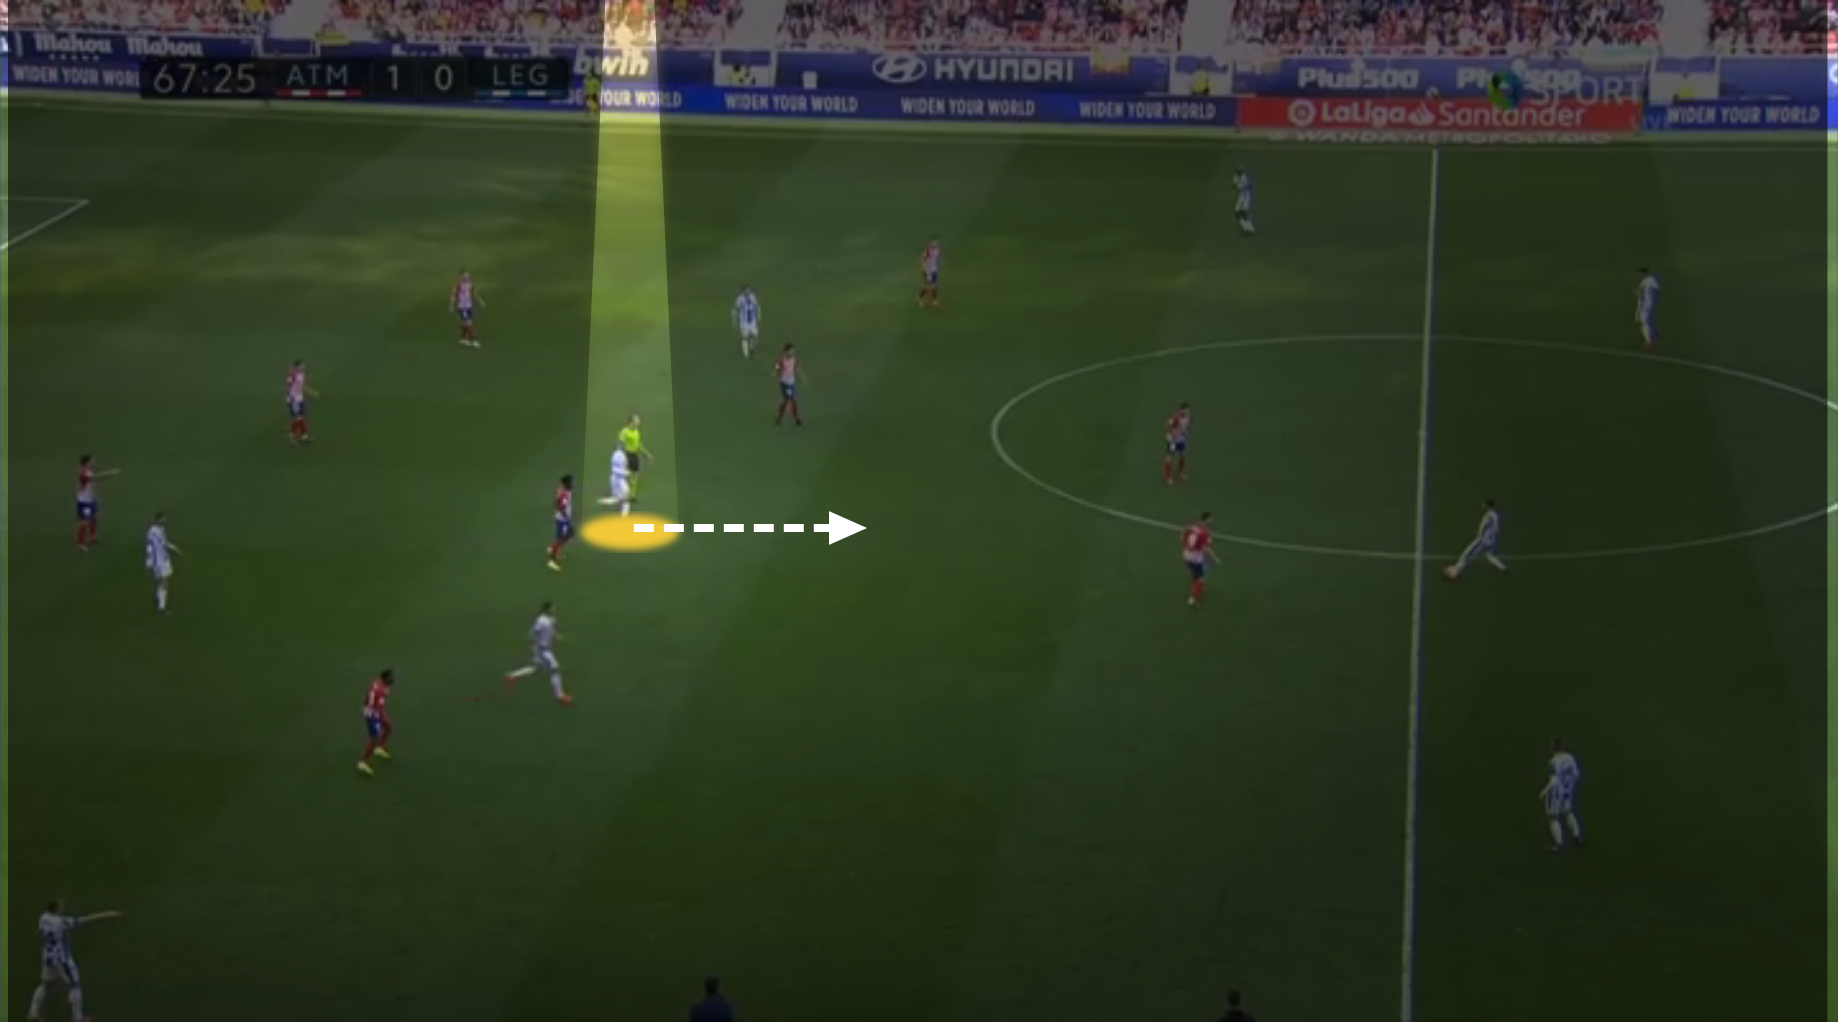 atletico-madrid-leganes-la-liga-tactical-analysis-statistics